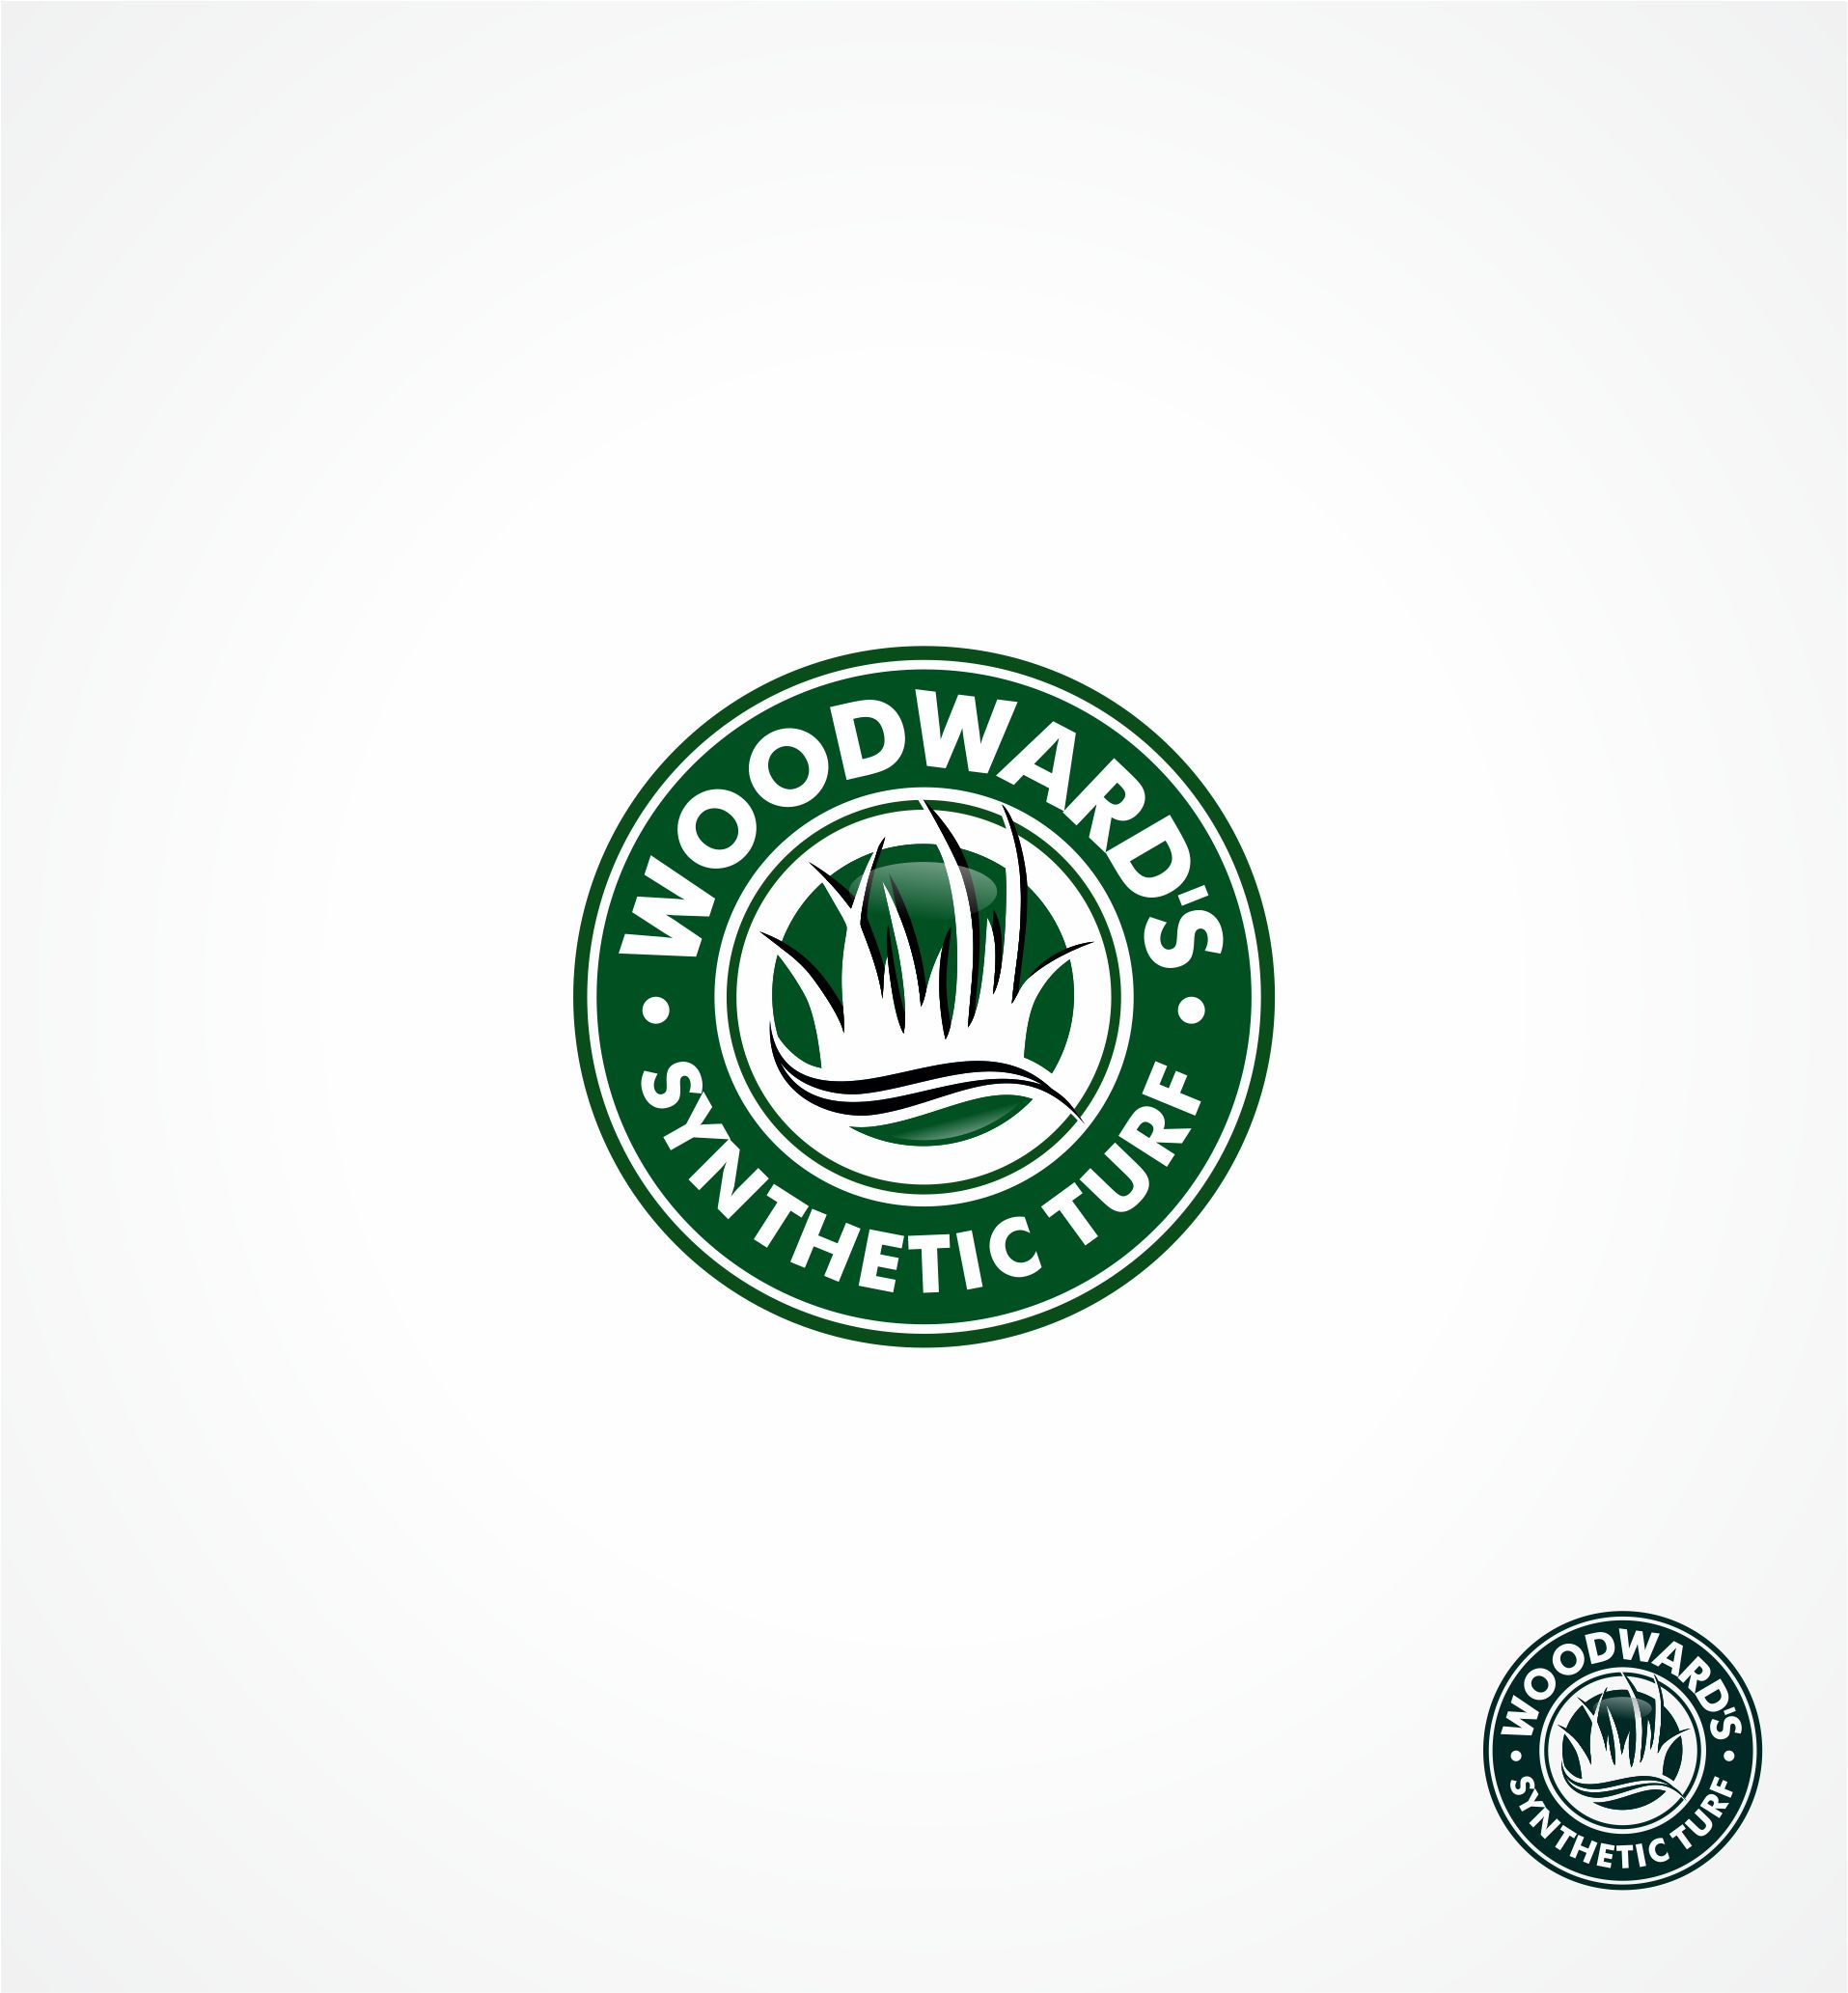 Logo Design by Raymond Garcia - Entry No. 71 in the Logo Design Contest Artistic Logo Design for Woodward's Synthetic Turf.